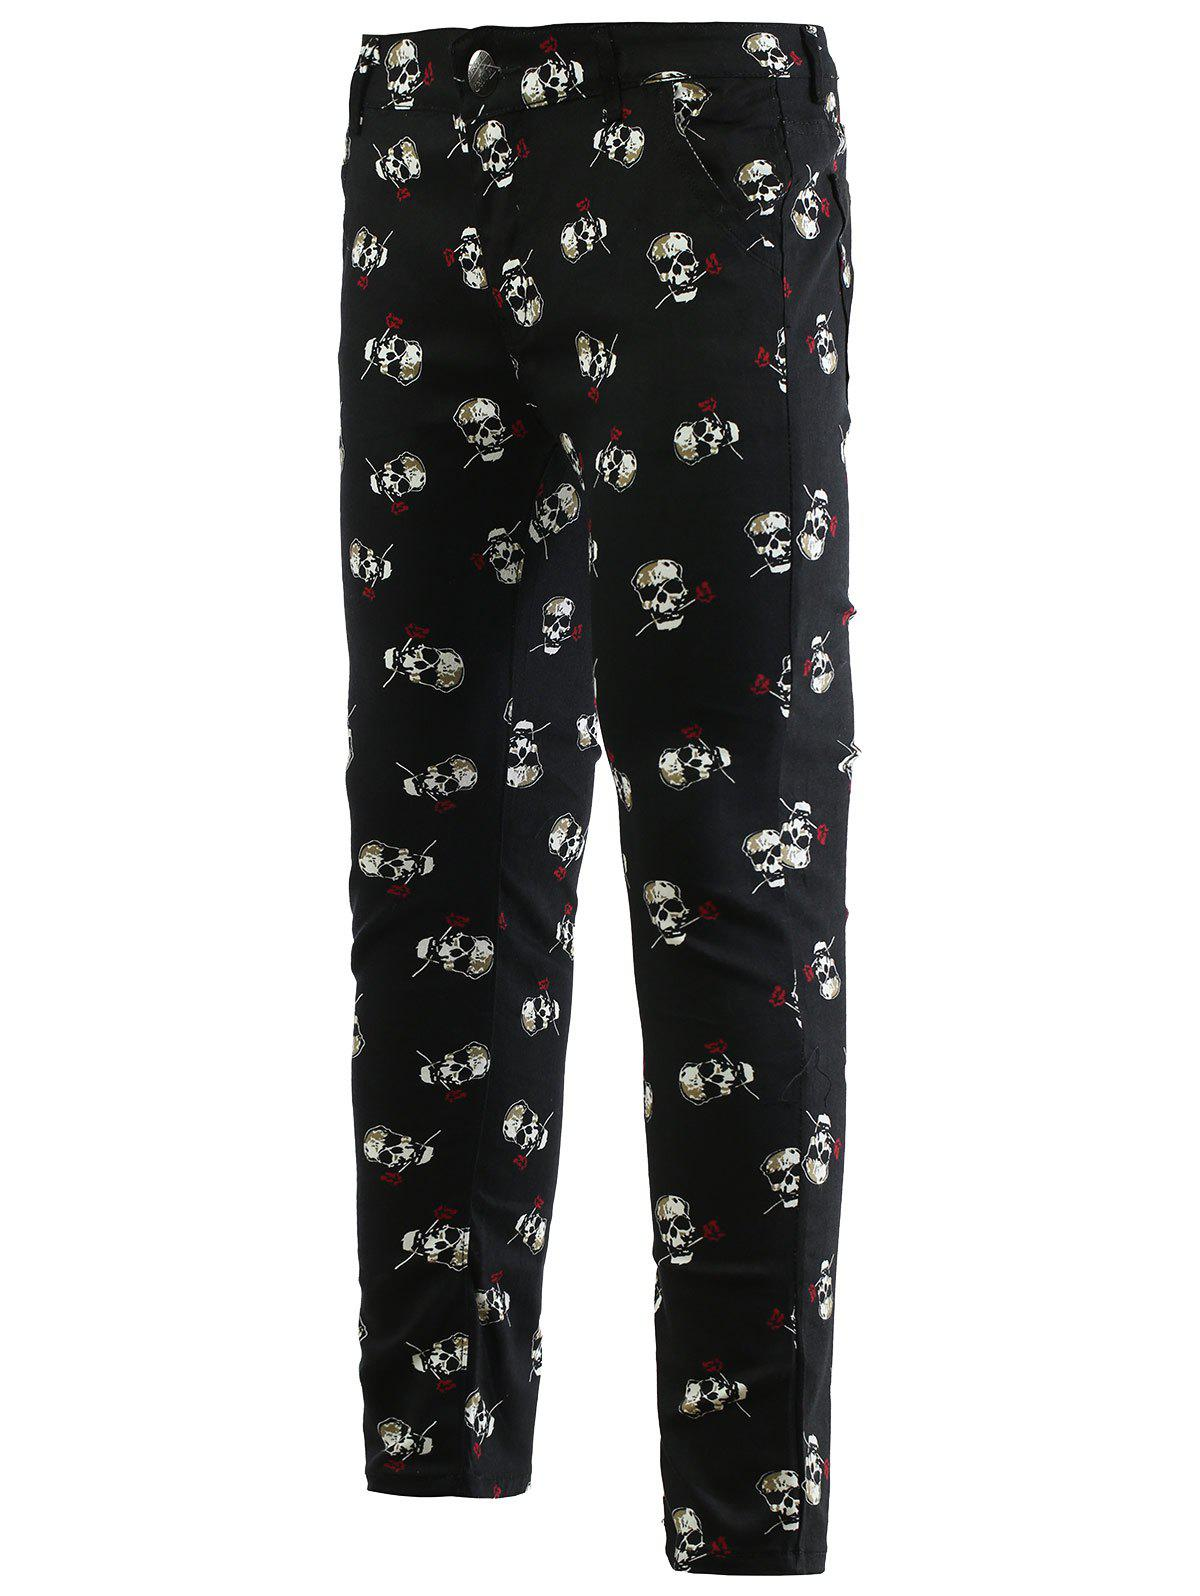 Rose Skull Print Zipper Fly Skinny Men's Tapered Pants - BLACK 33